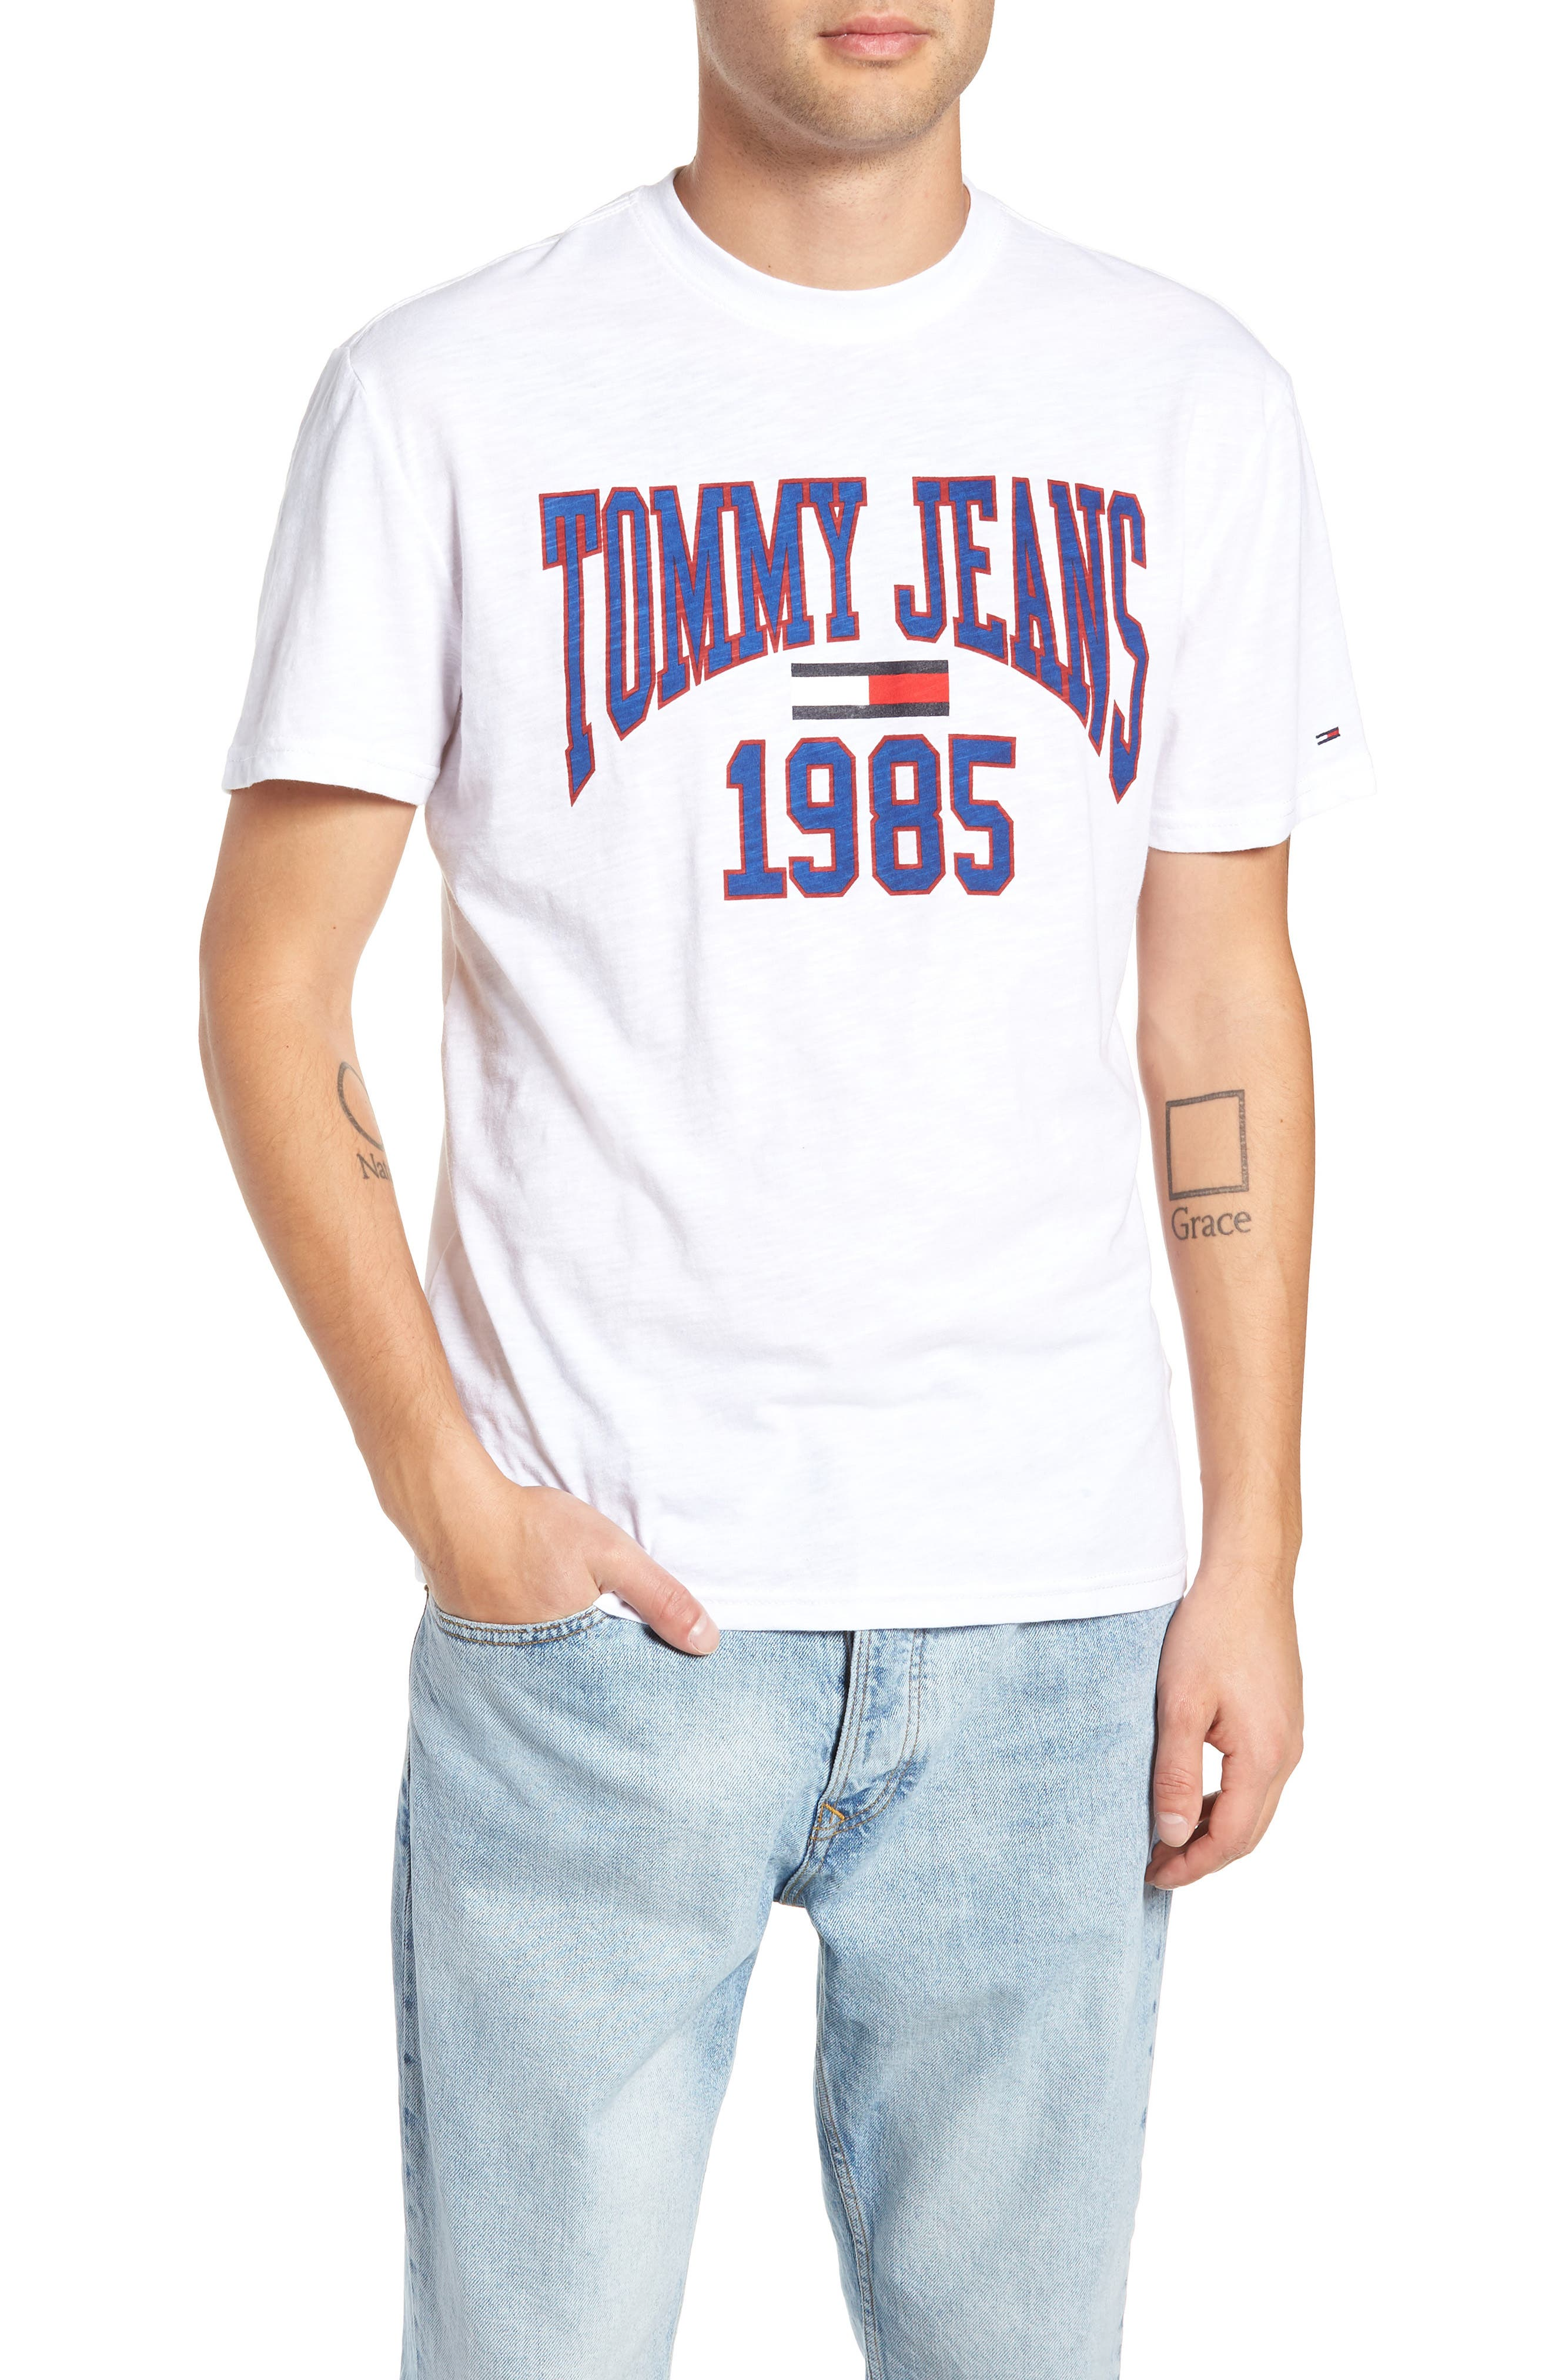 Tommy Jeans Collegiate Graphic T-Shirt, White